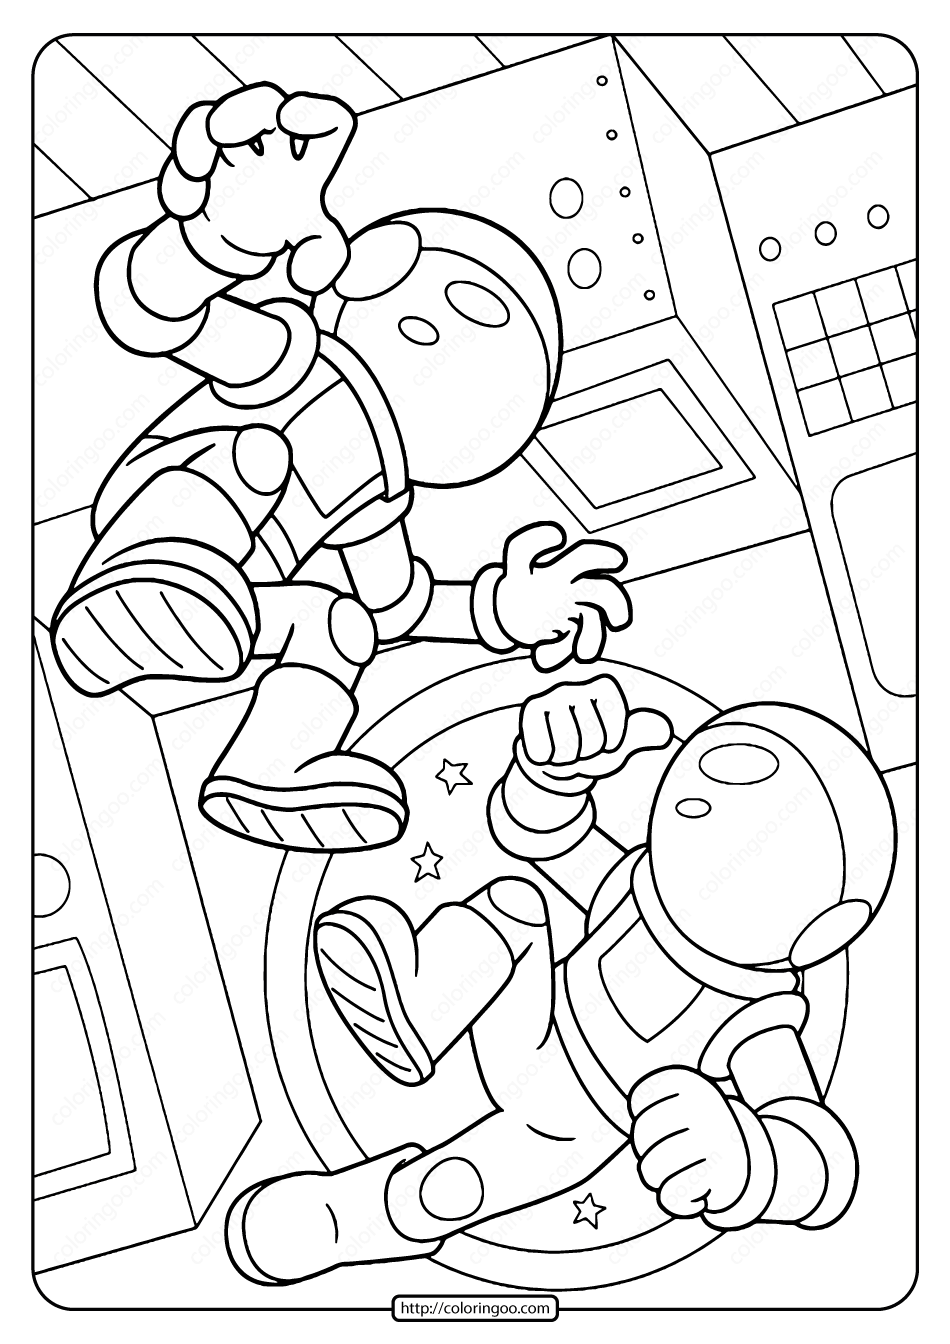 coloring picture of astronaut free printable astronaut coloring pages for kids astronaut of coloring picture